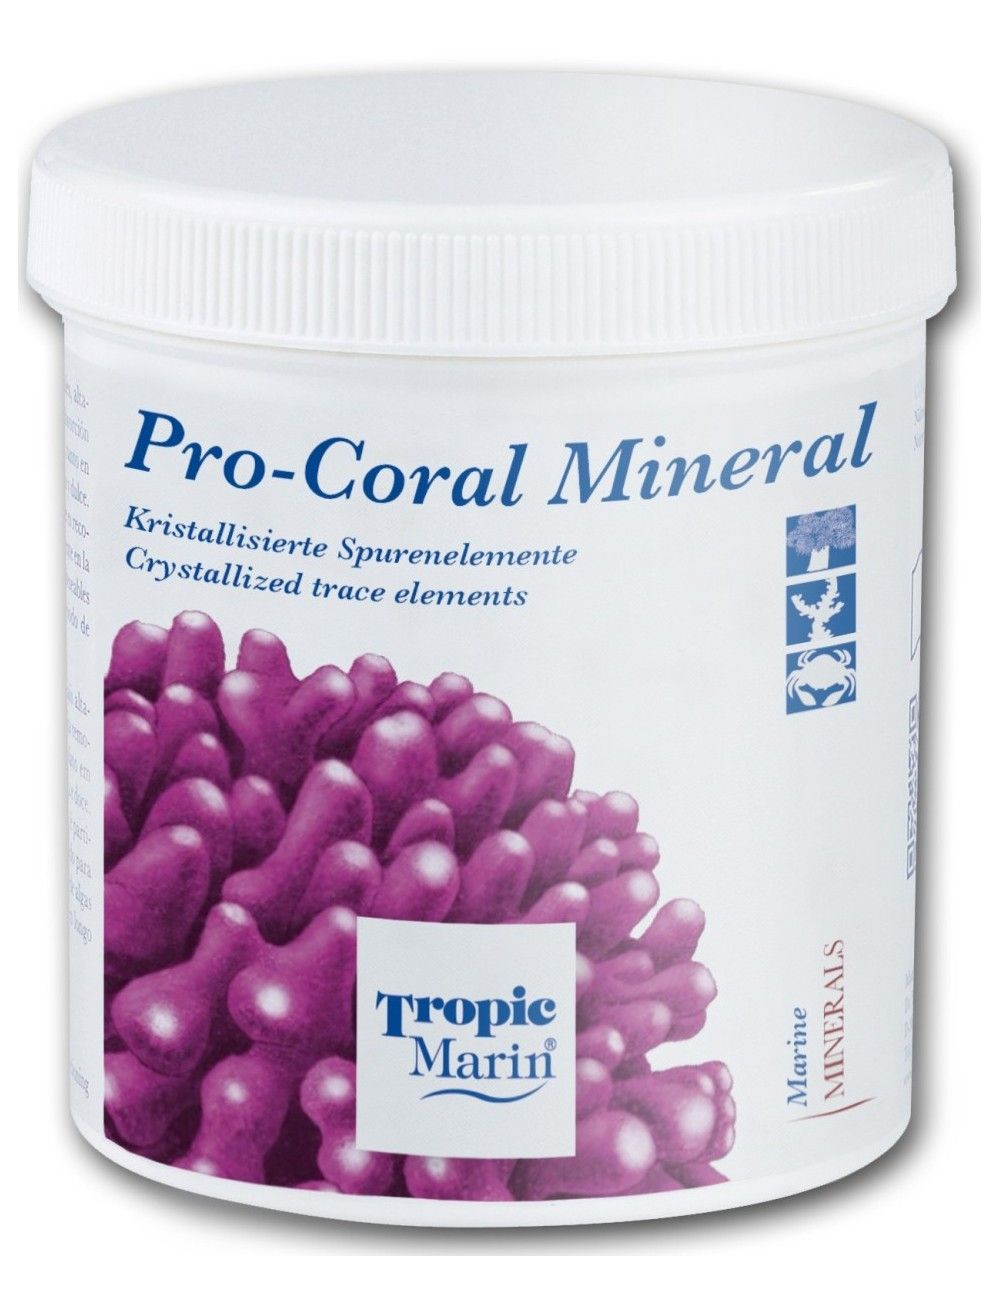 TROPIC MARIN - Pro-Coral Mineral - 250 g